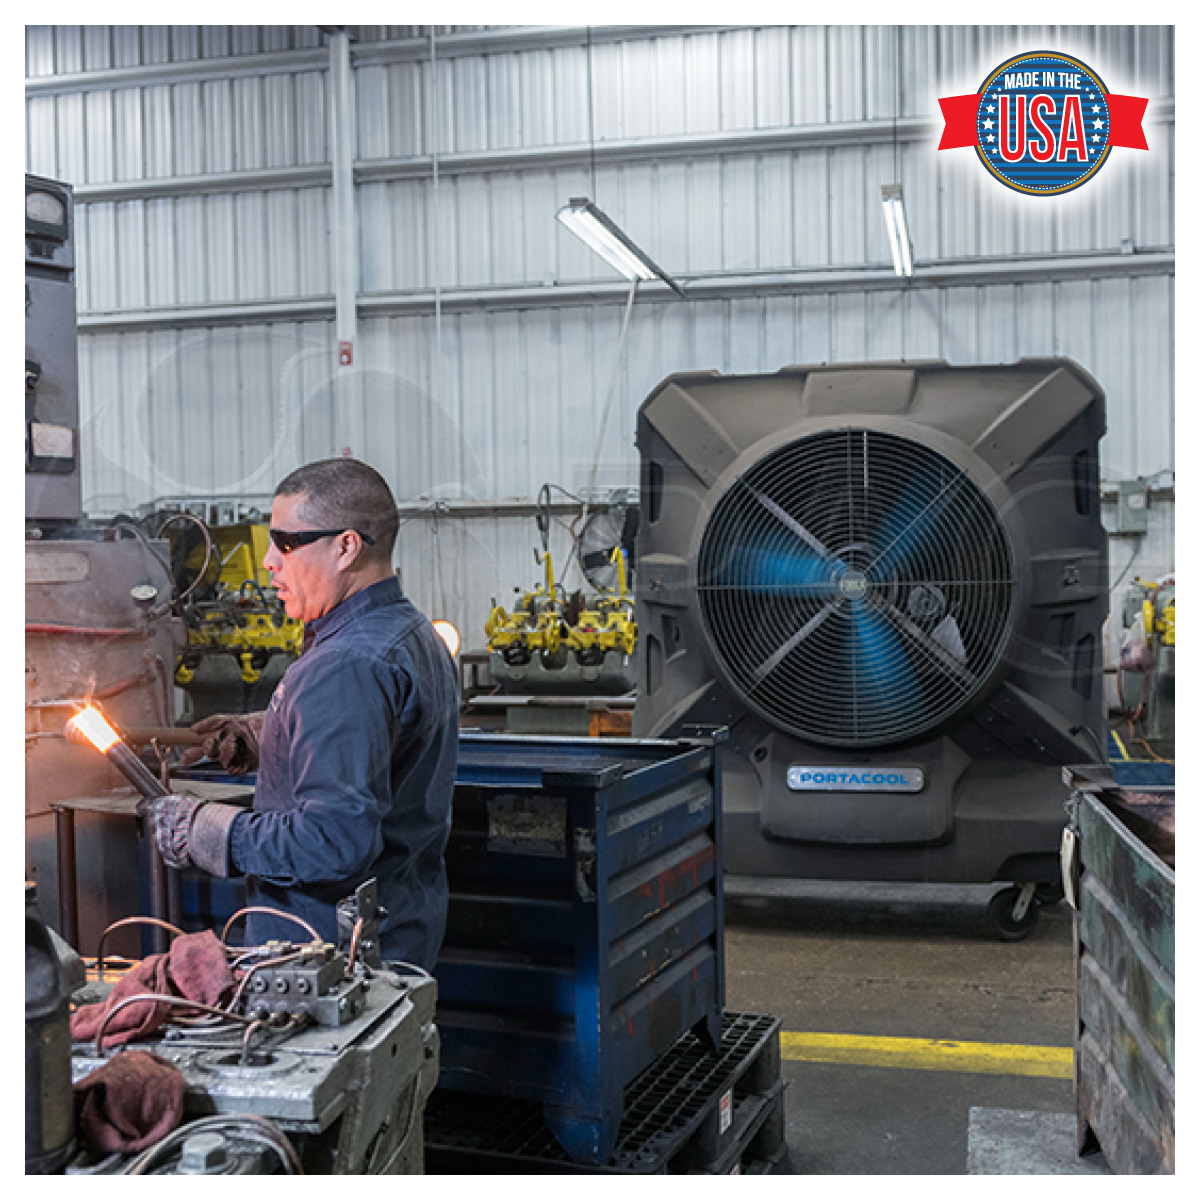 Portacool Jetstream 270 Portable Evaporative Cooler used by a welder